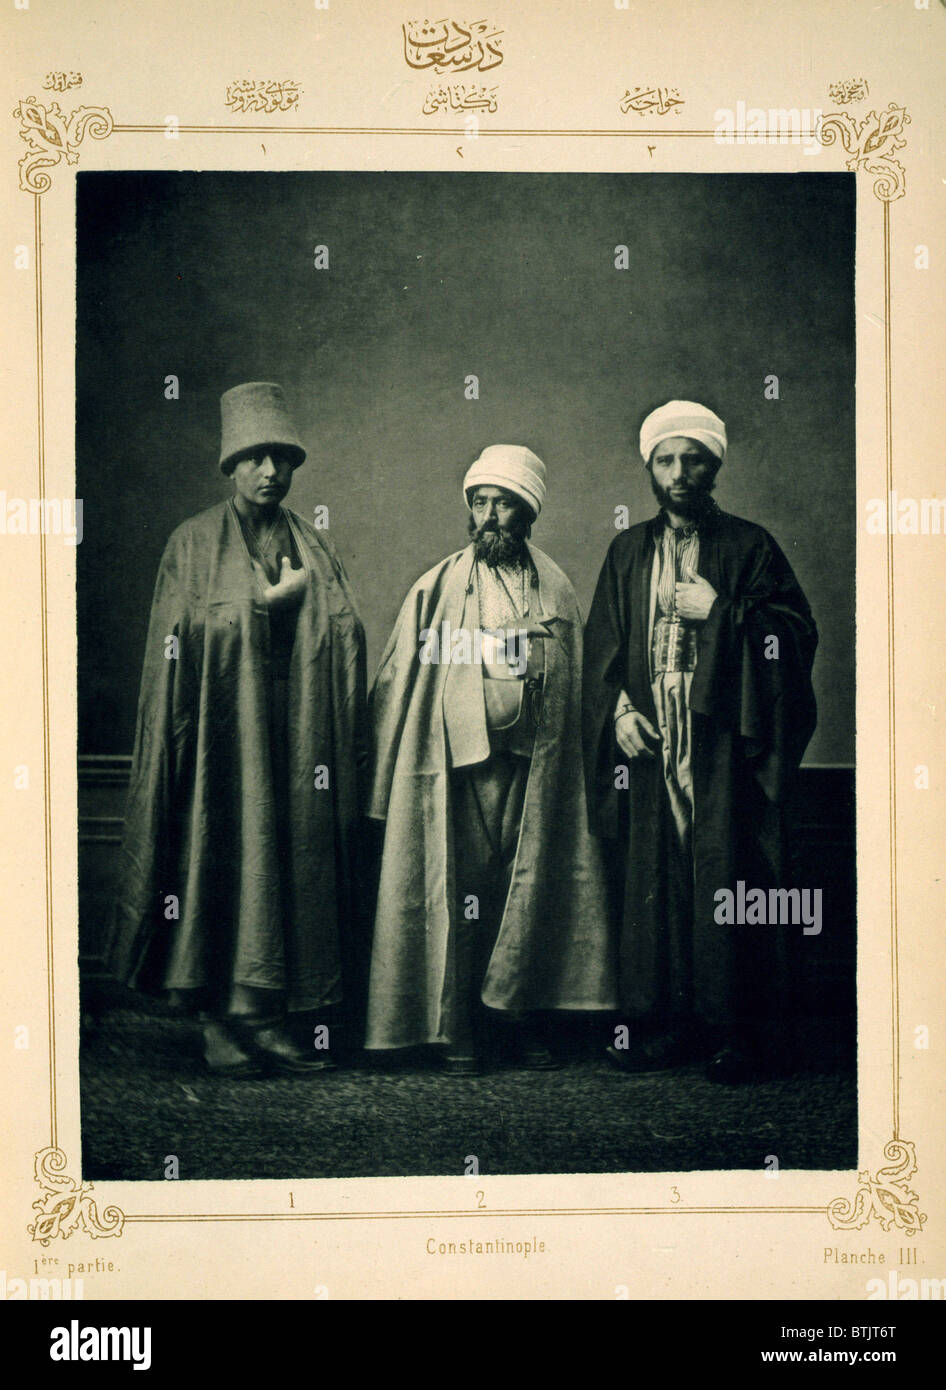 The Ottoman Empire, studio portrait of models wearing traditional clothing from Istanbul, Mevlevi Dervish, Bektasi - Stock Image